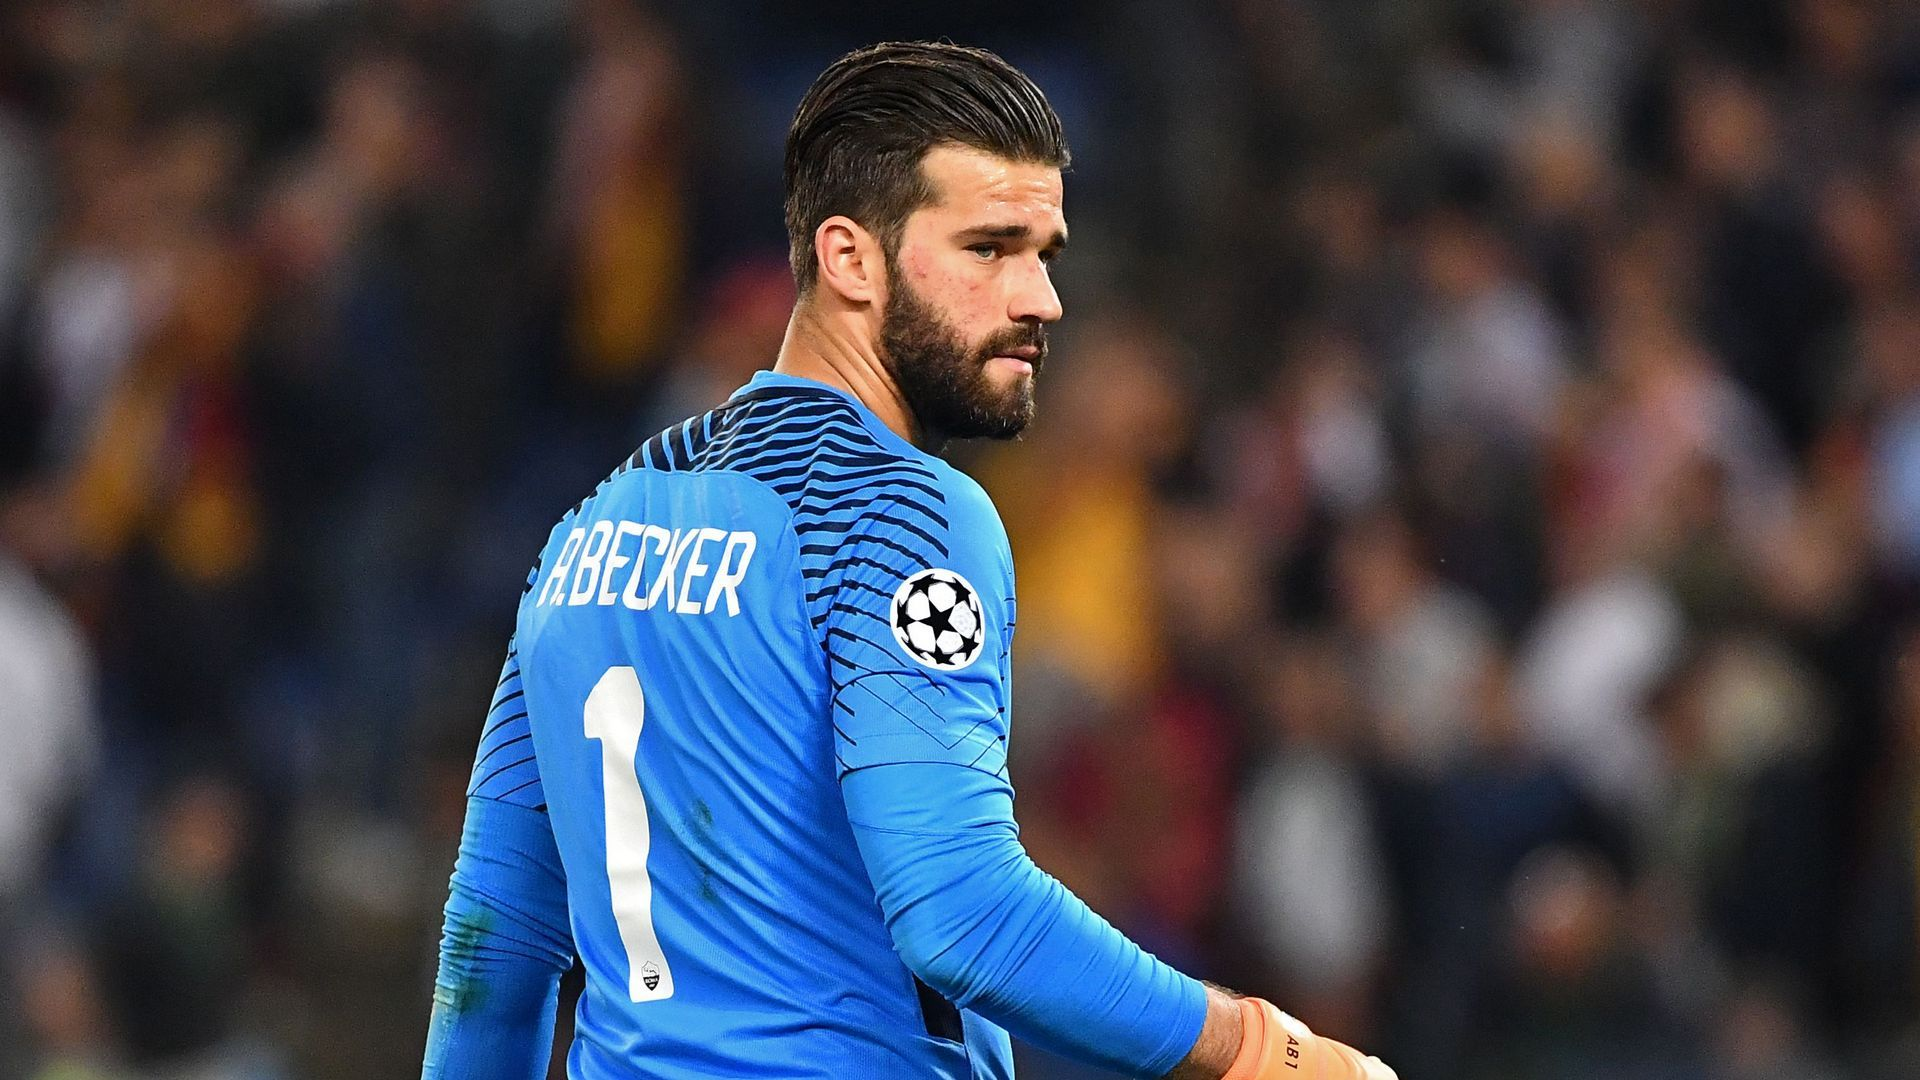 Alisson Becker Wallpapers